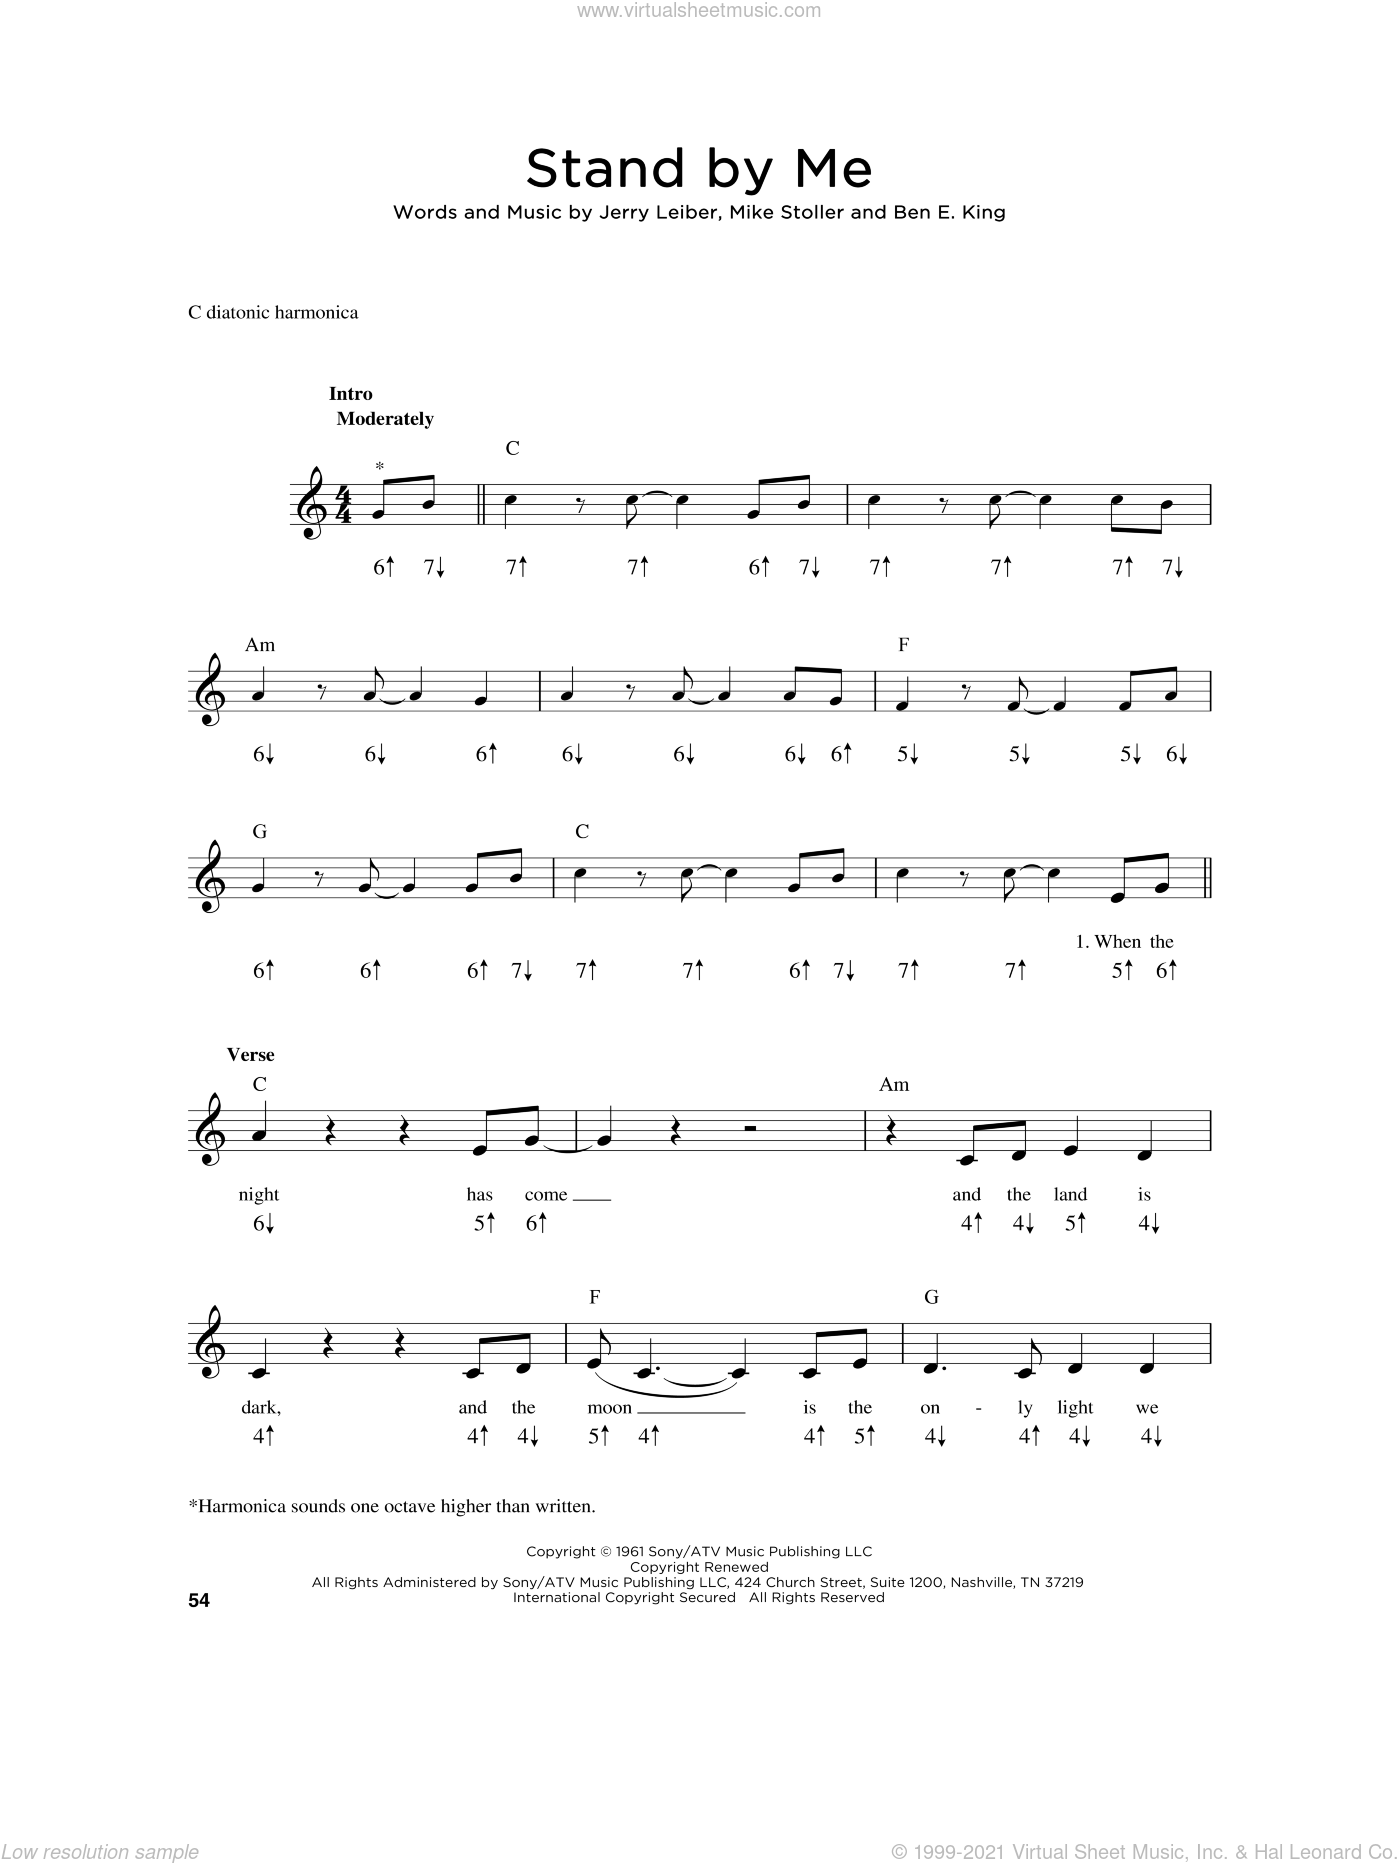 Stand By Me sheet music for harmonica solo by Ben E. King, Mickey Gilley, Jerry Leiber and Mike Stoller, intermediate skill level